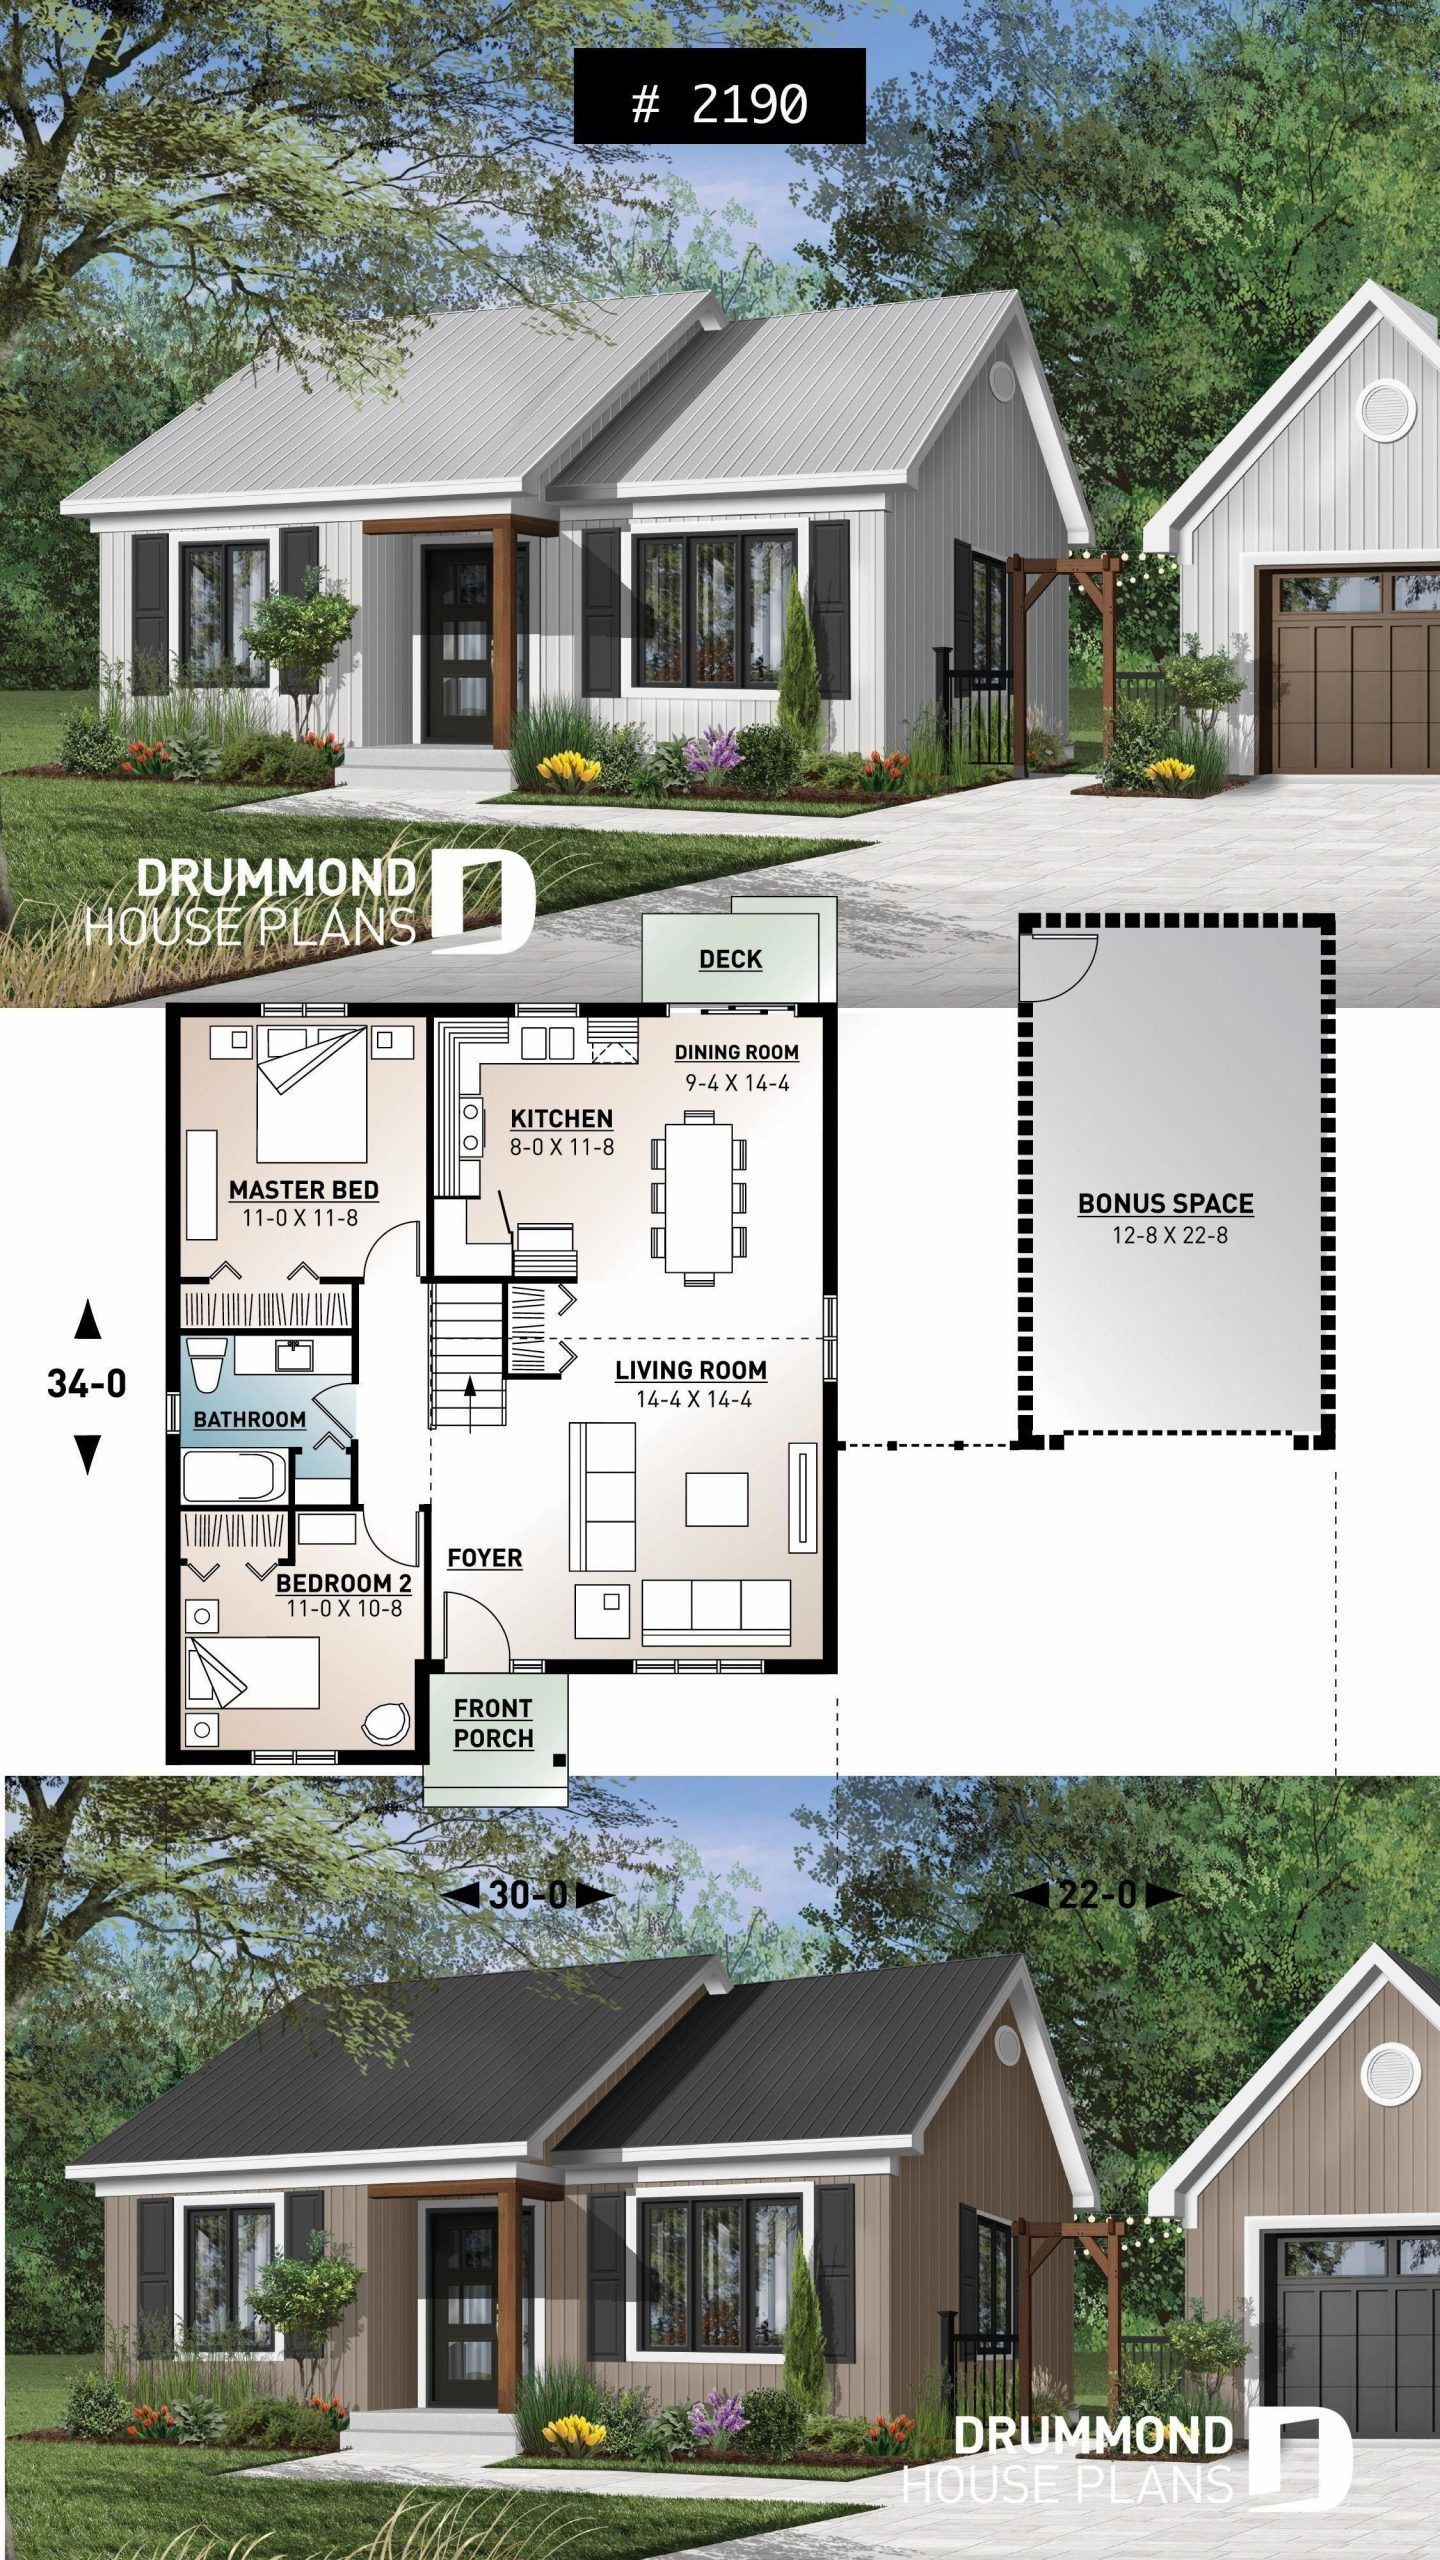 Low Cost House Designs And Floor Plans 2021 Drummond House Plans Ranch House Plans House Plans